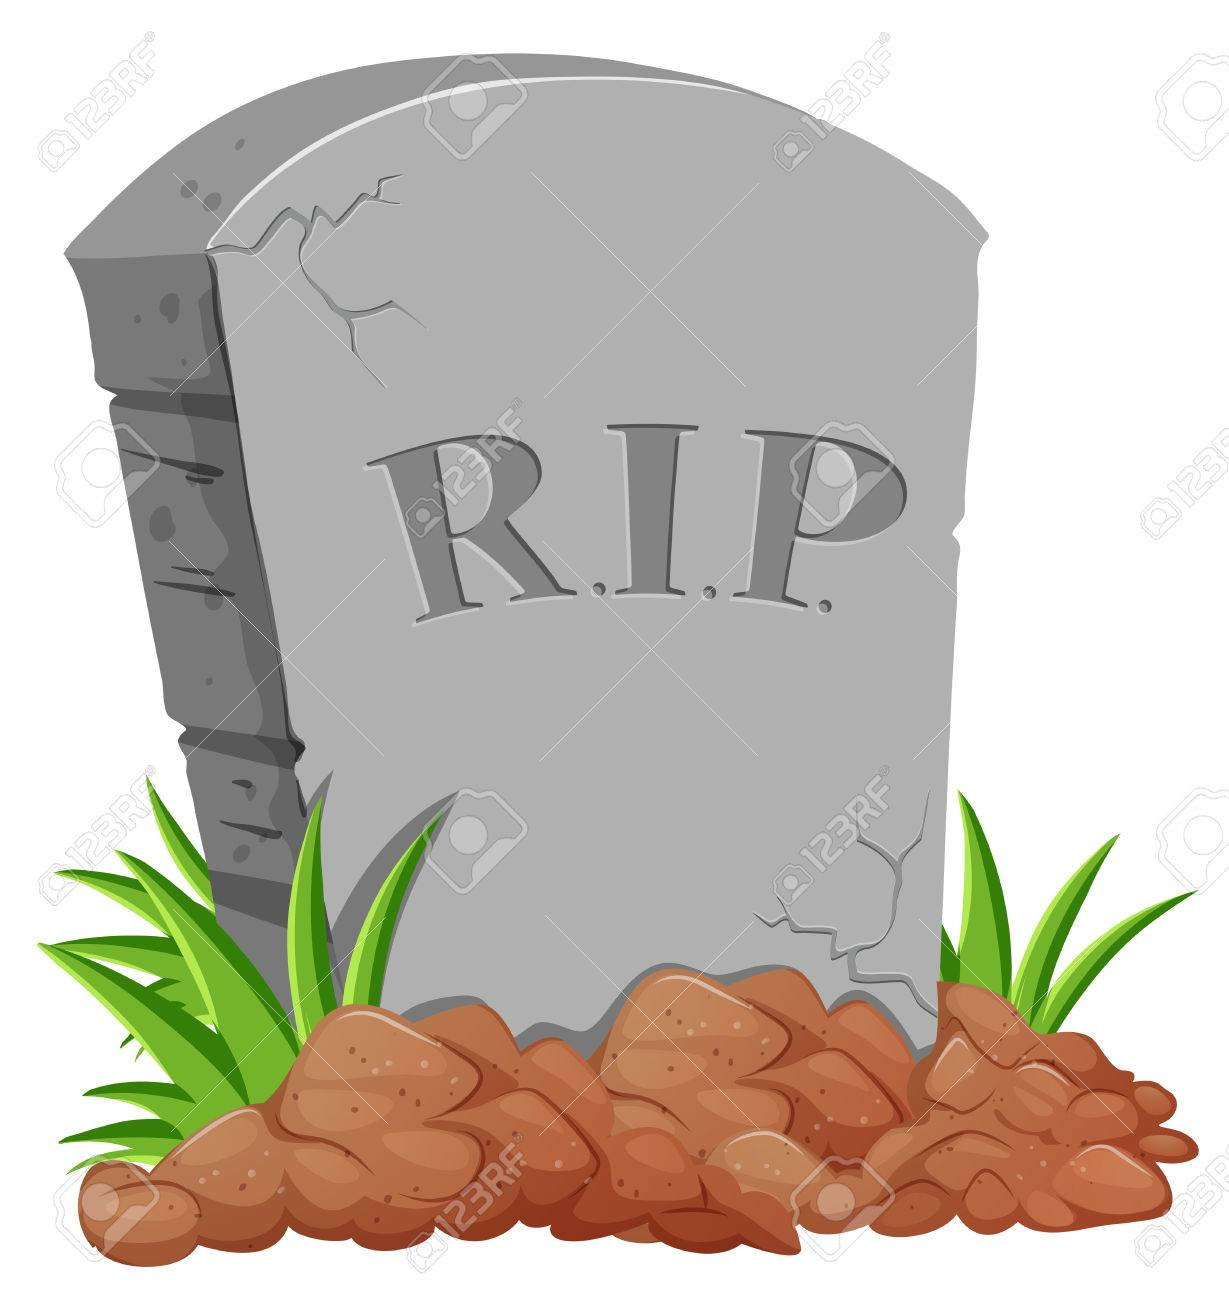 Grave stone on the ground illustration.